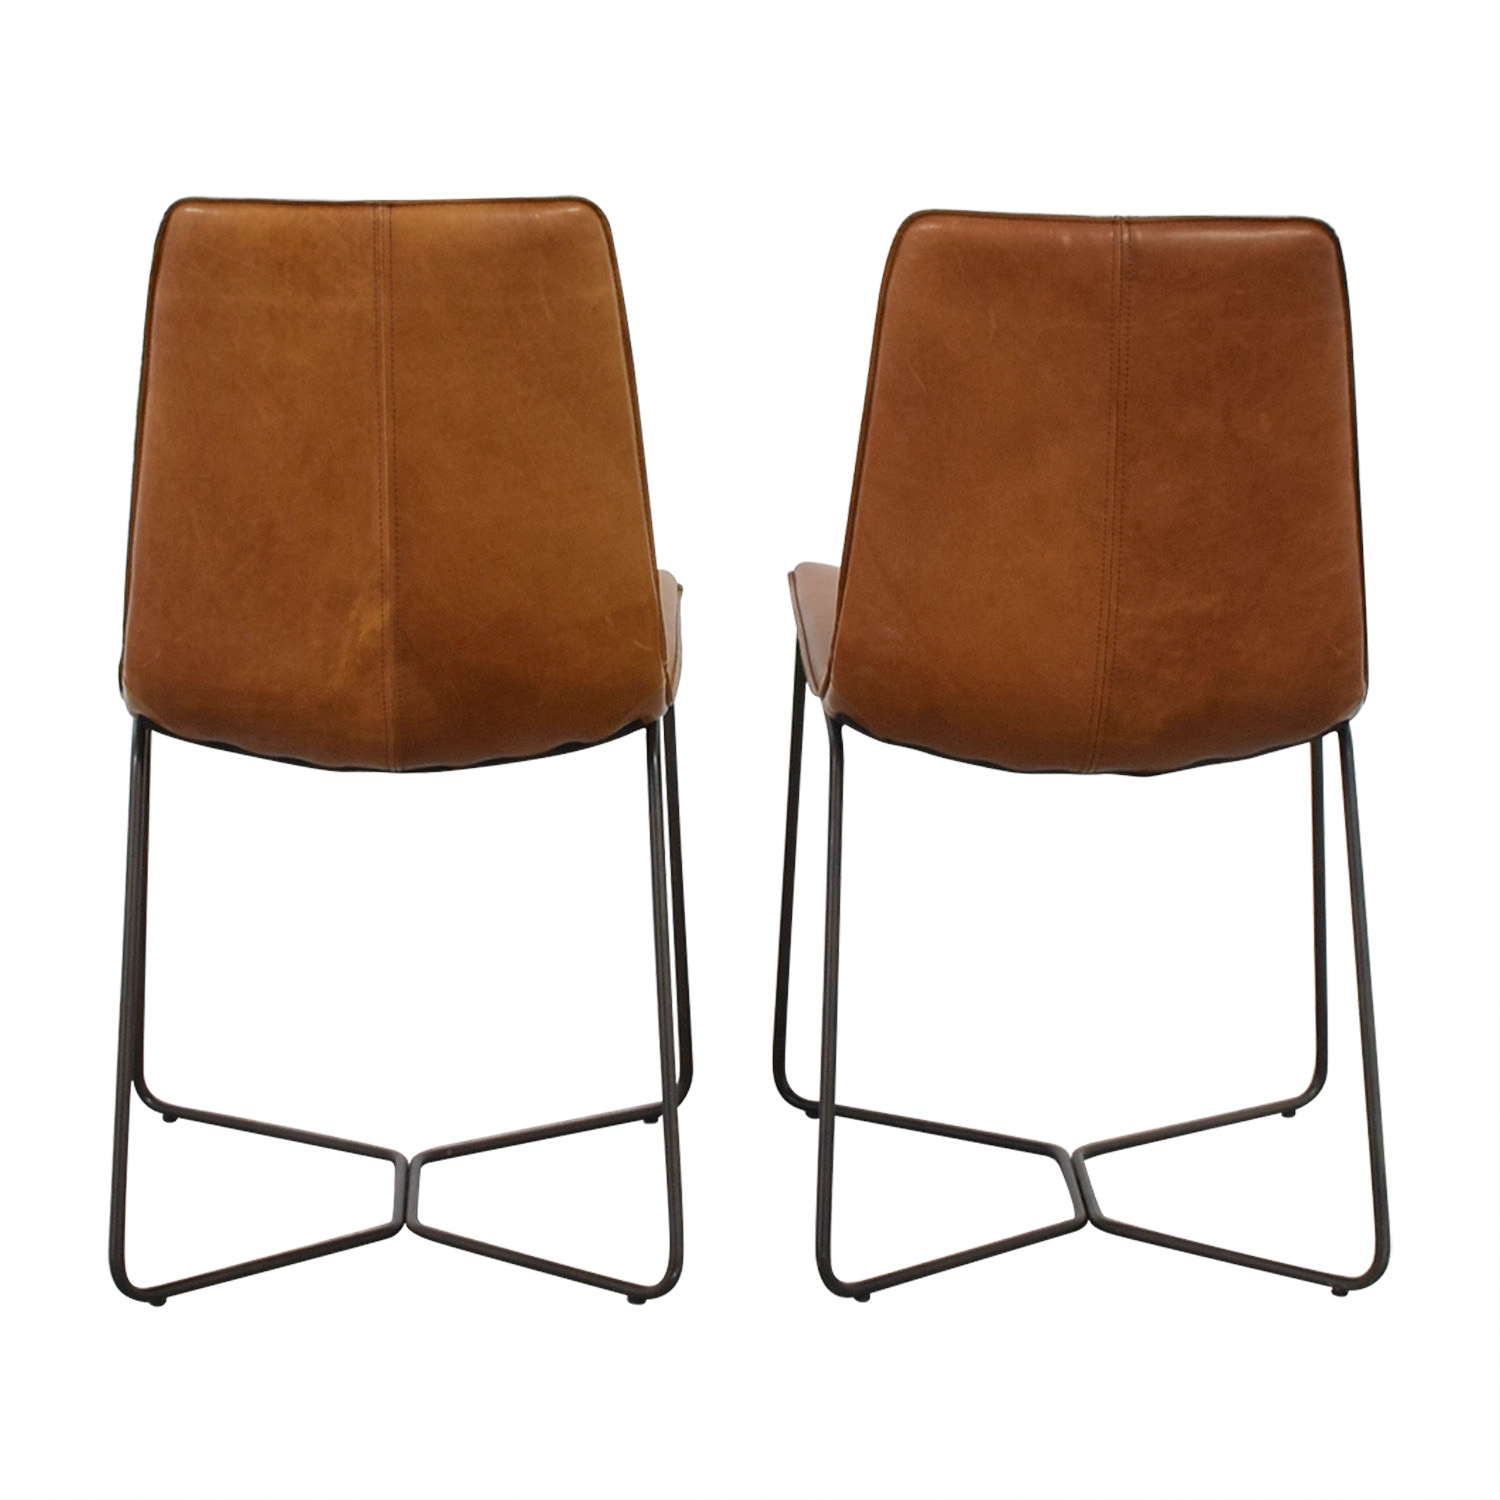 buy West Elm West Elm Leather Slope Dining Chairs online